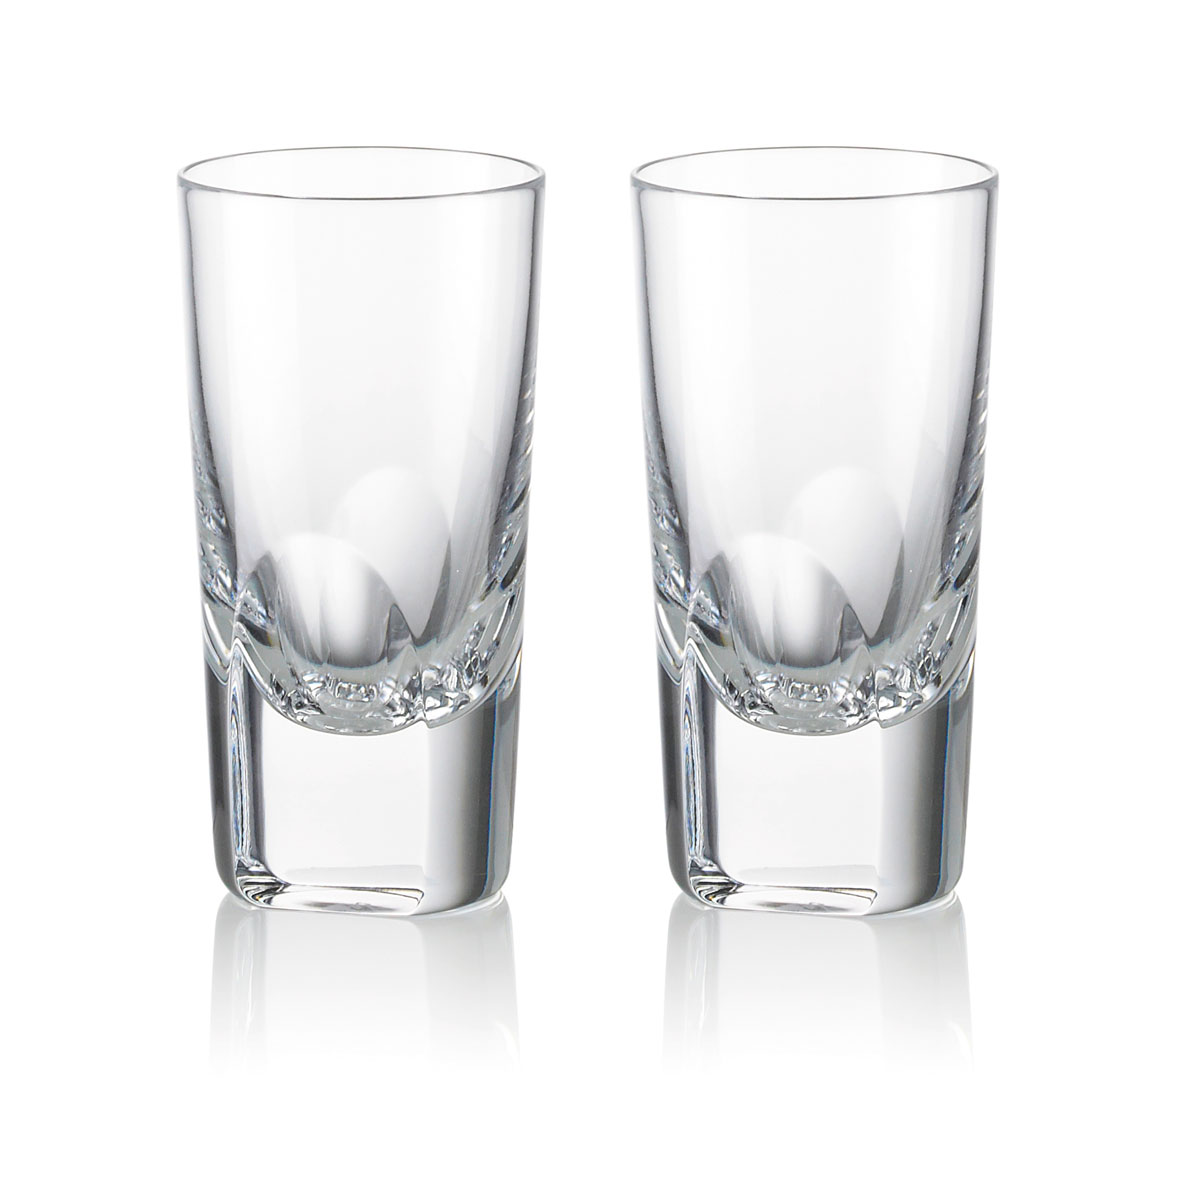 Rogaska Crystal, 1665 Manhattan Vodka, Pair